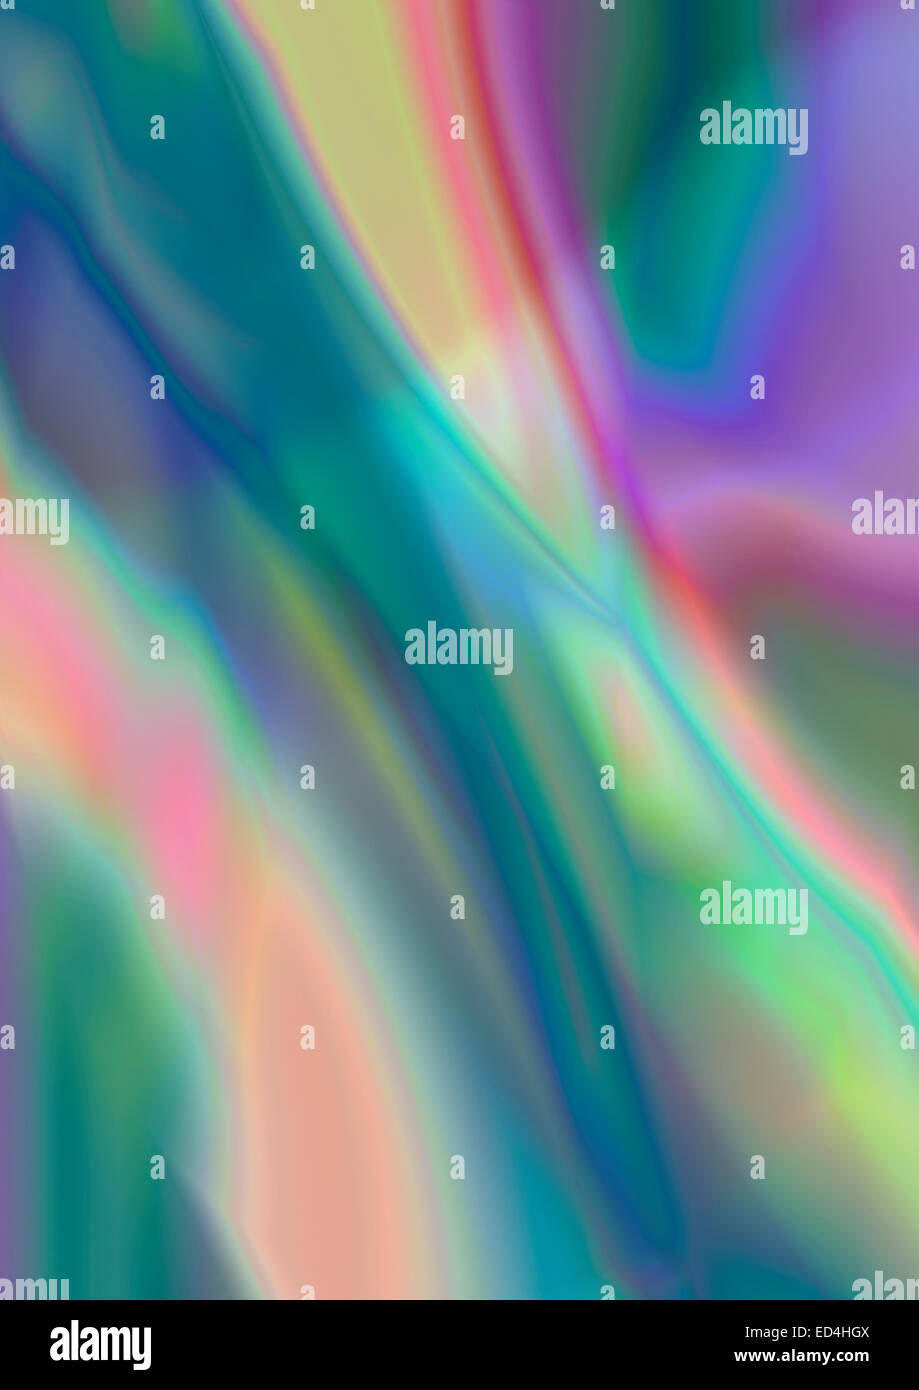 Glossy colorful abstract background - Stock Image